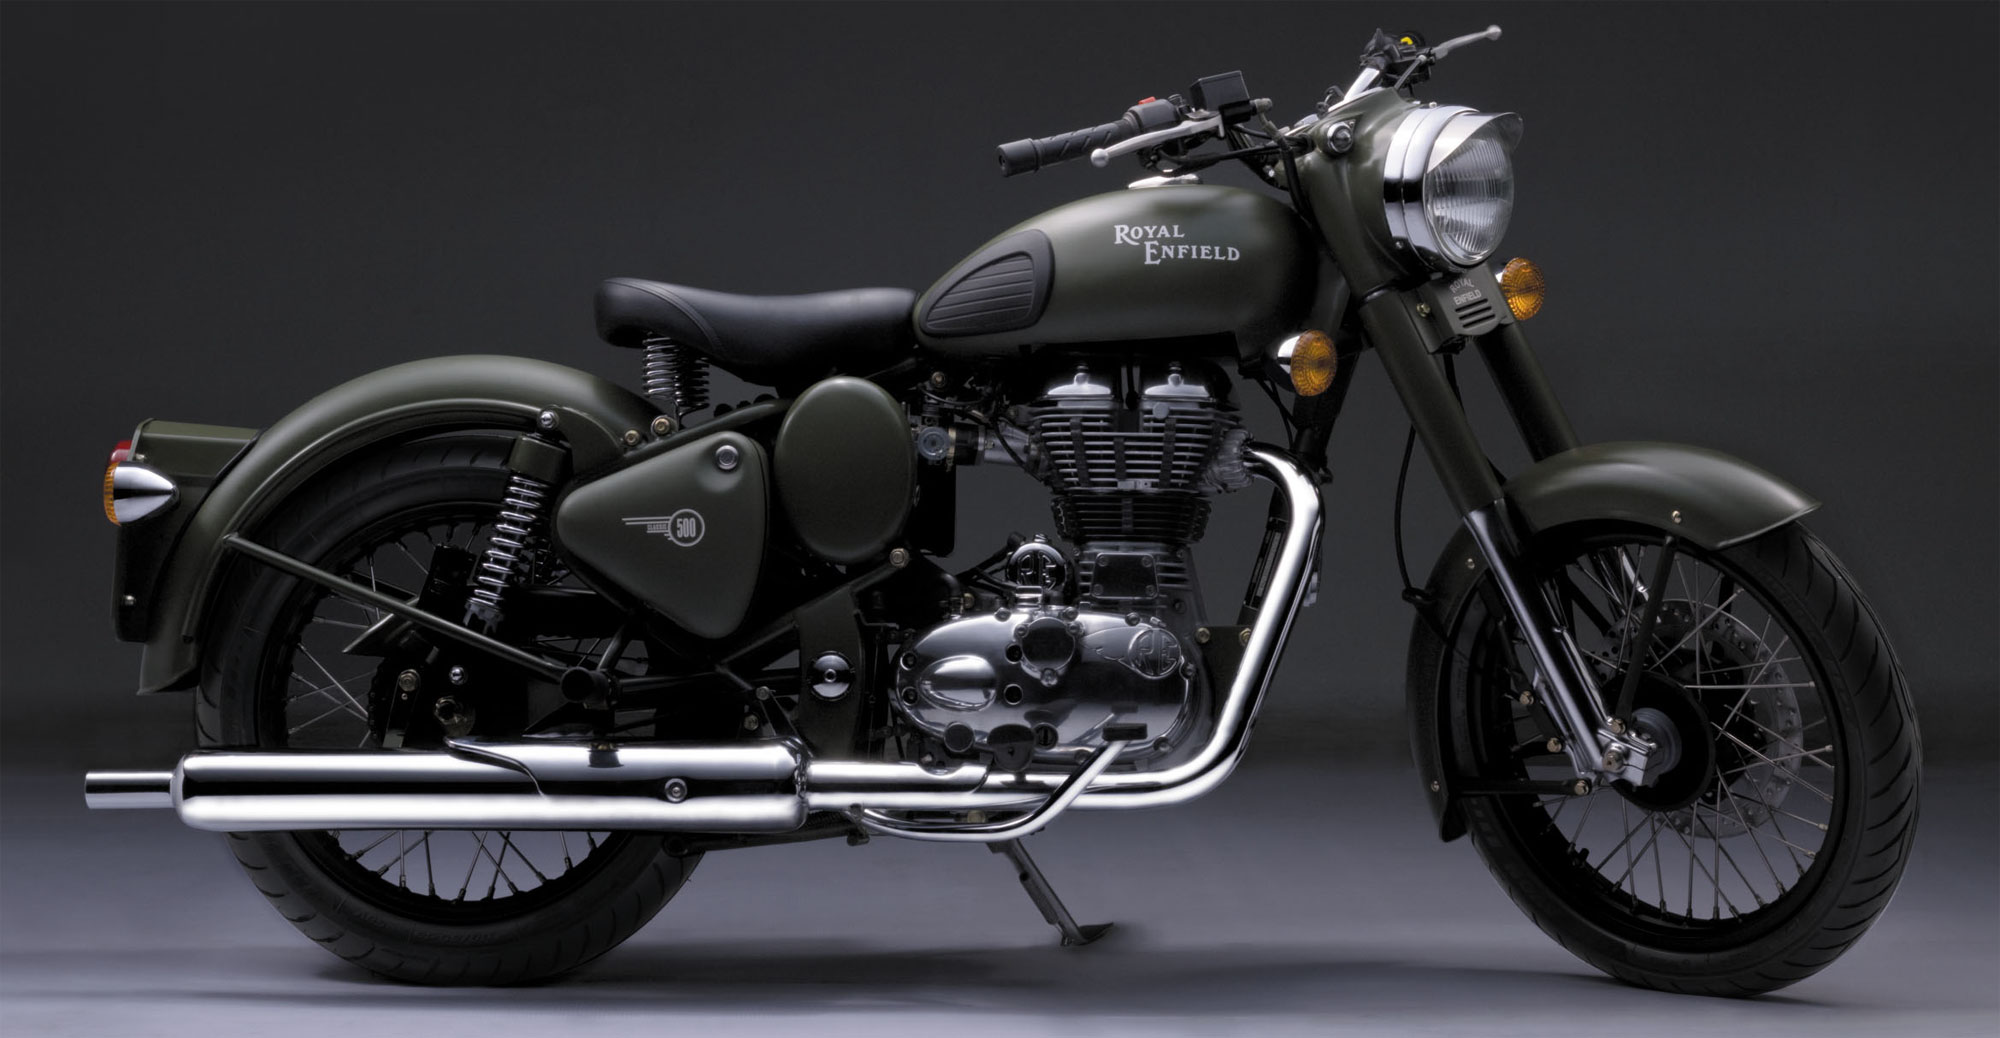 Royal Enfield Bullet 500 Army 2003 images #123837